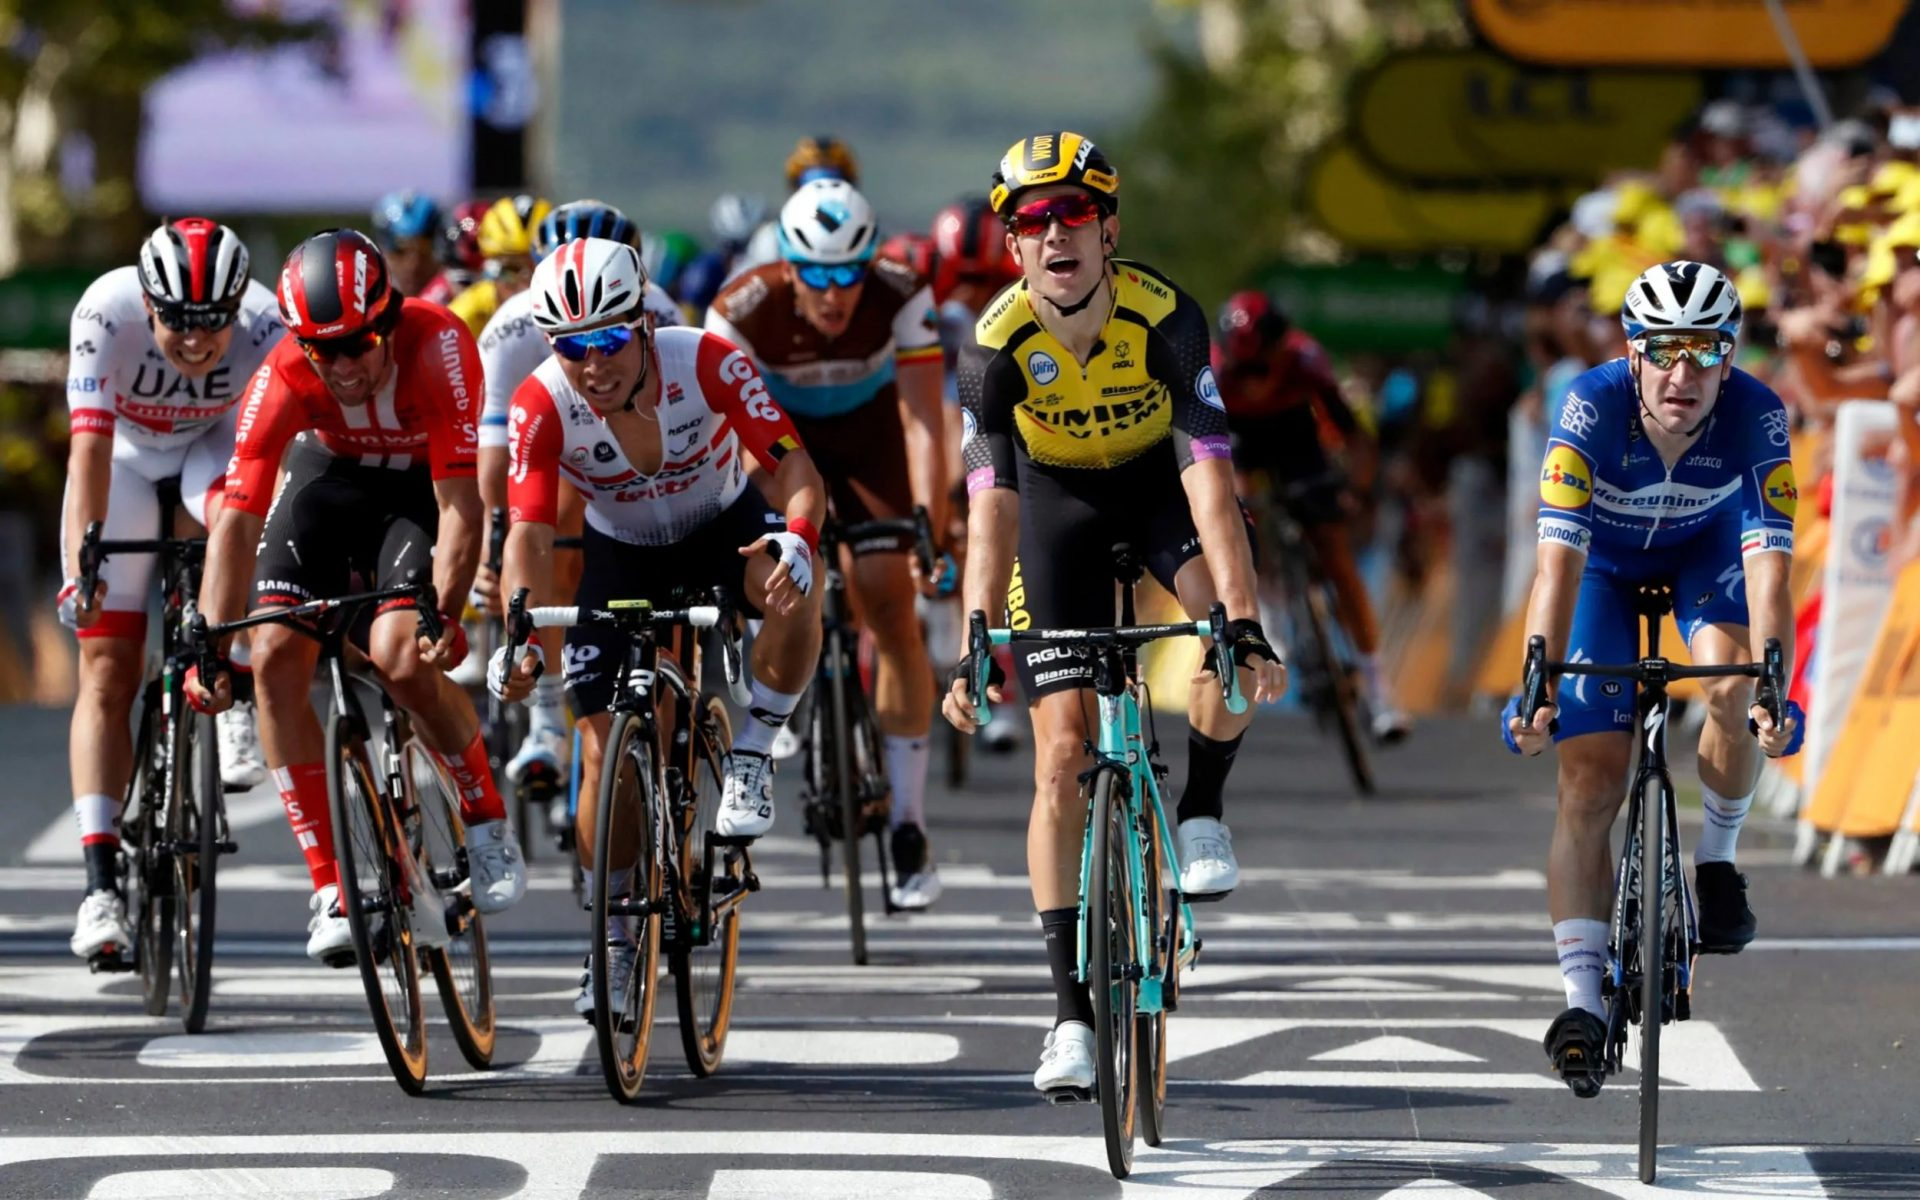 Van Aert Wins 2019 Tour de France Stage 10 and Some Big GC Contenders Lose Time 7